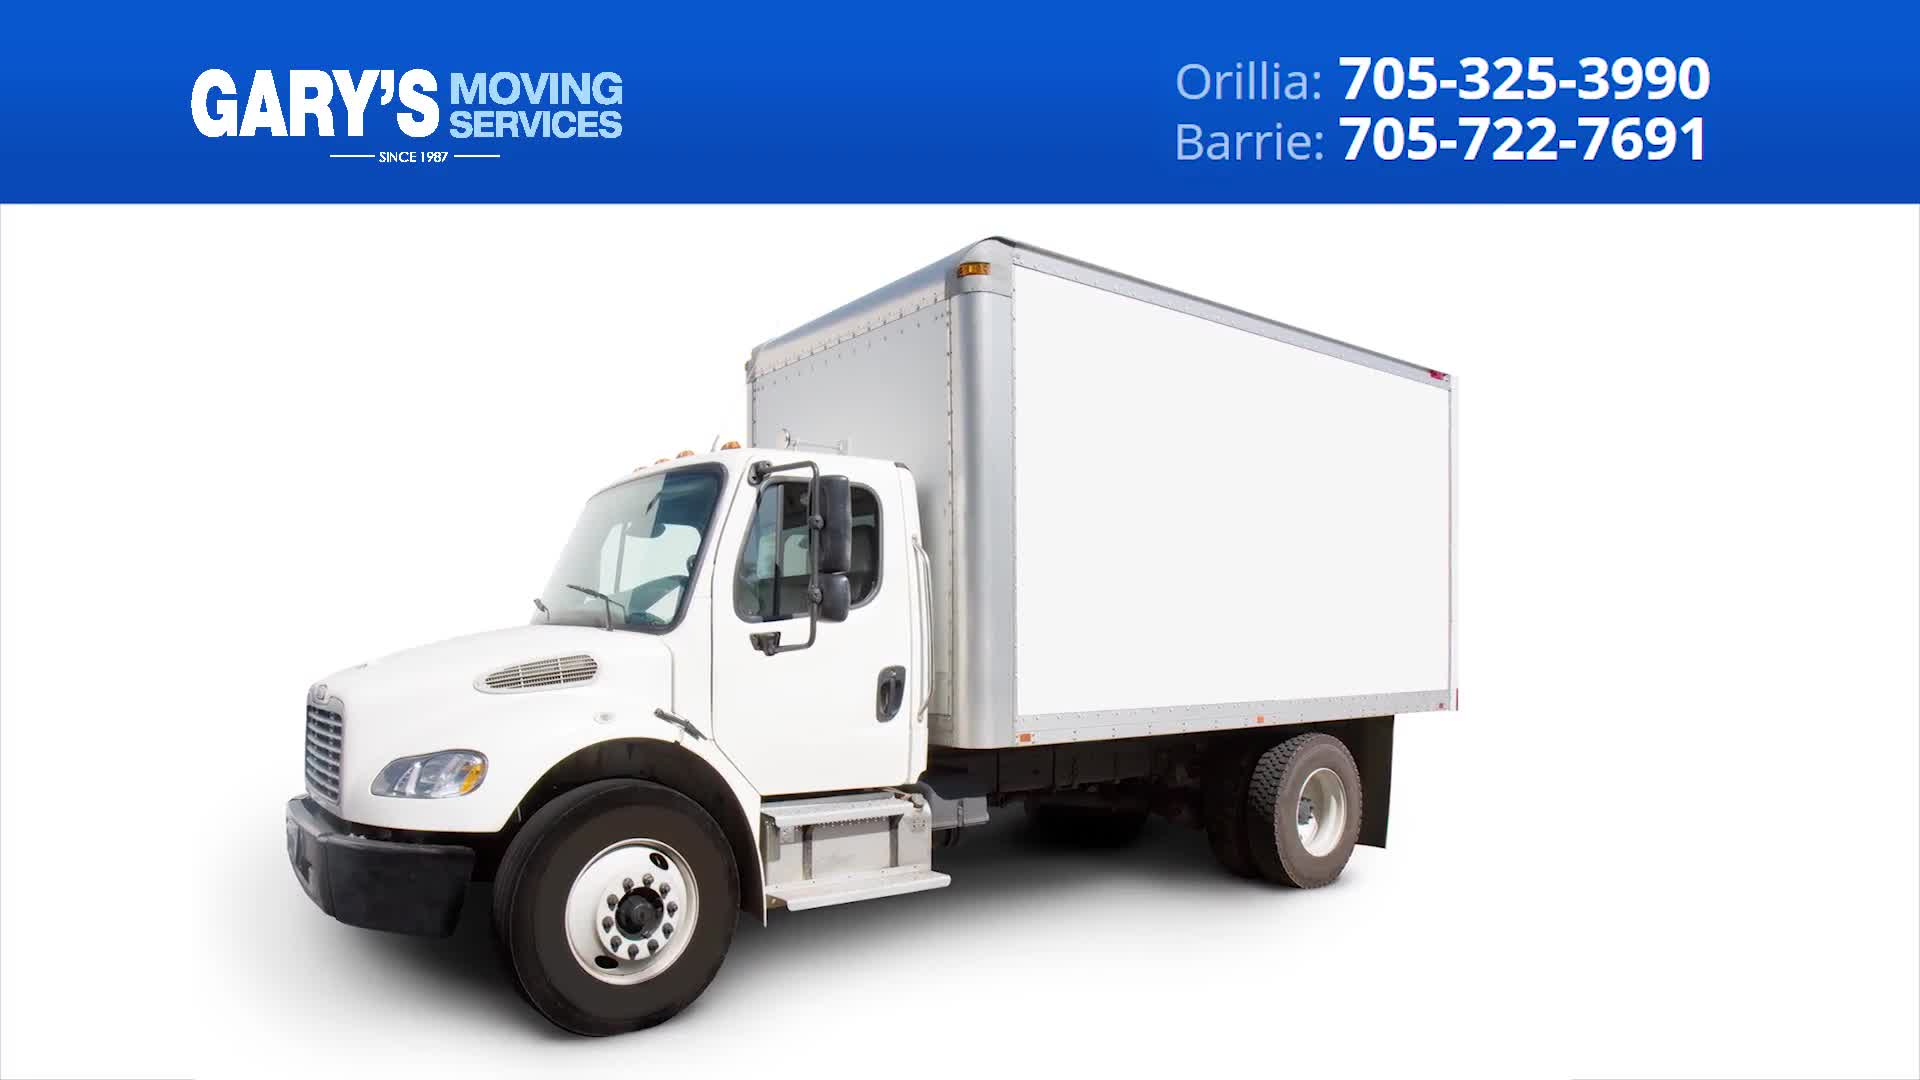 Gary's Moving Services - Moving Services & Storage Facilities - 705-325-3990